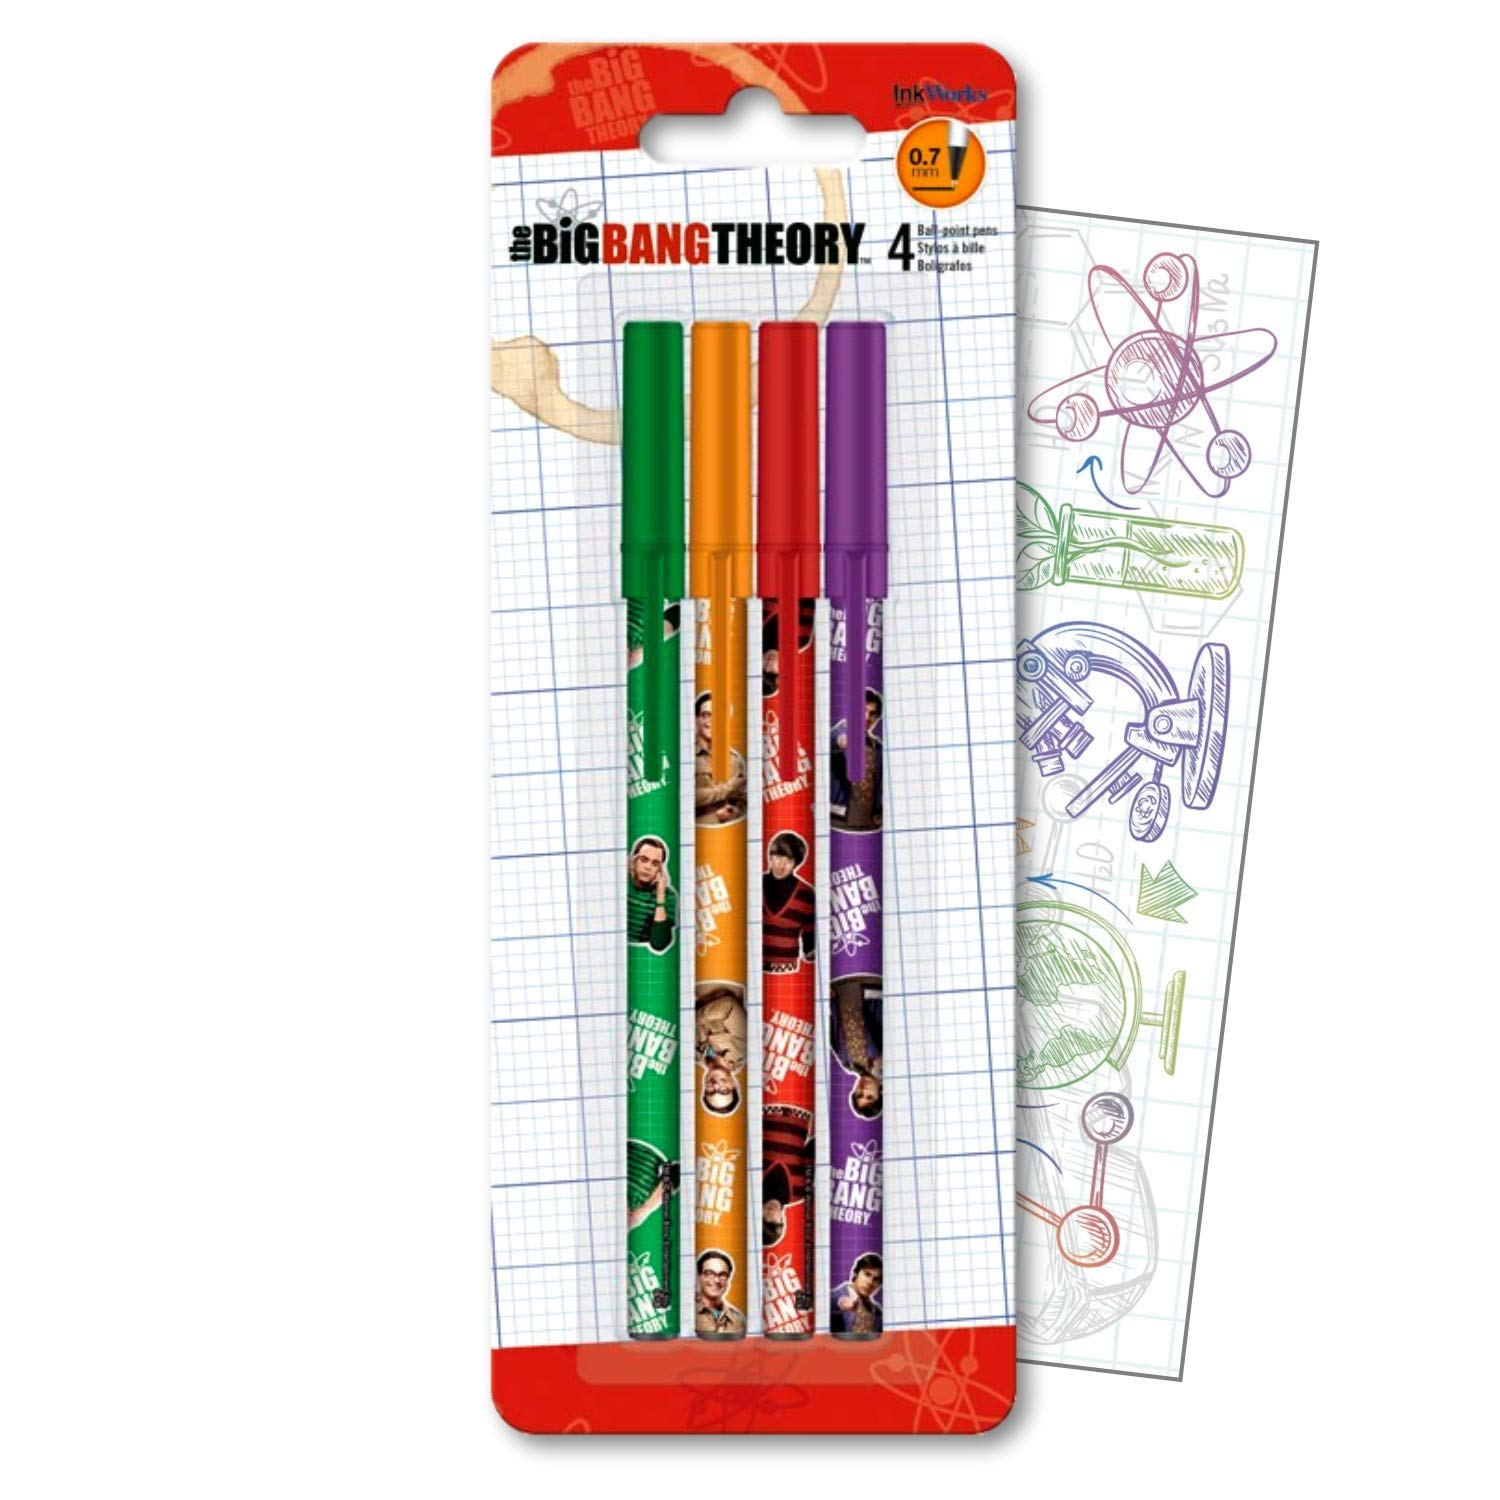 Big Bang Theory Pens 4 Pack with Separately Licenced GWW Specialty Science Bookmark